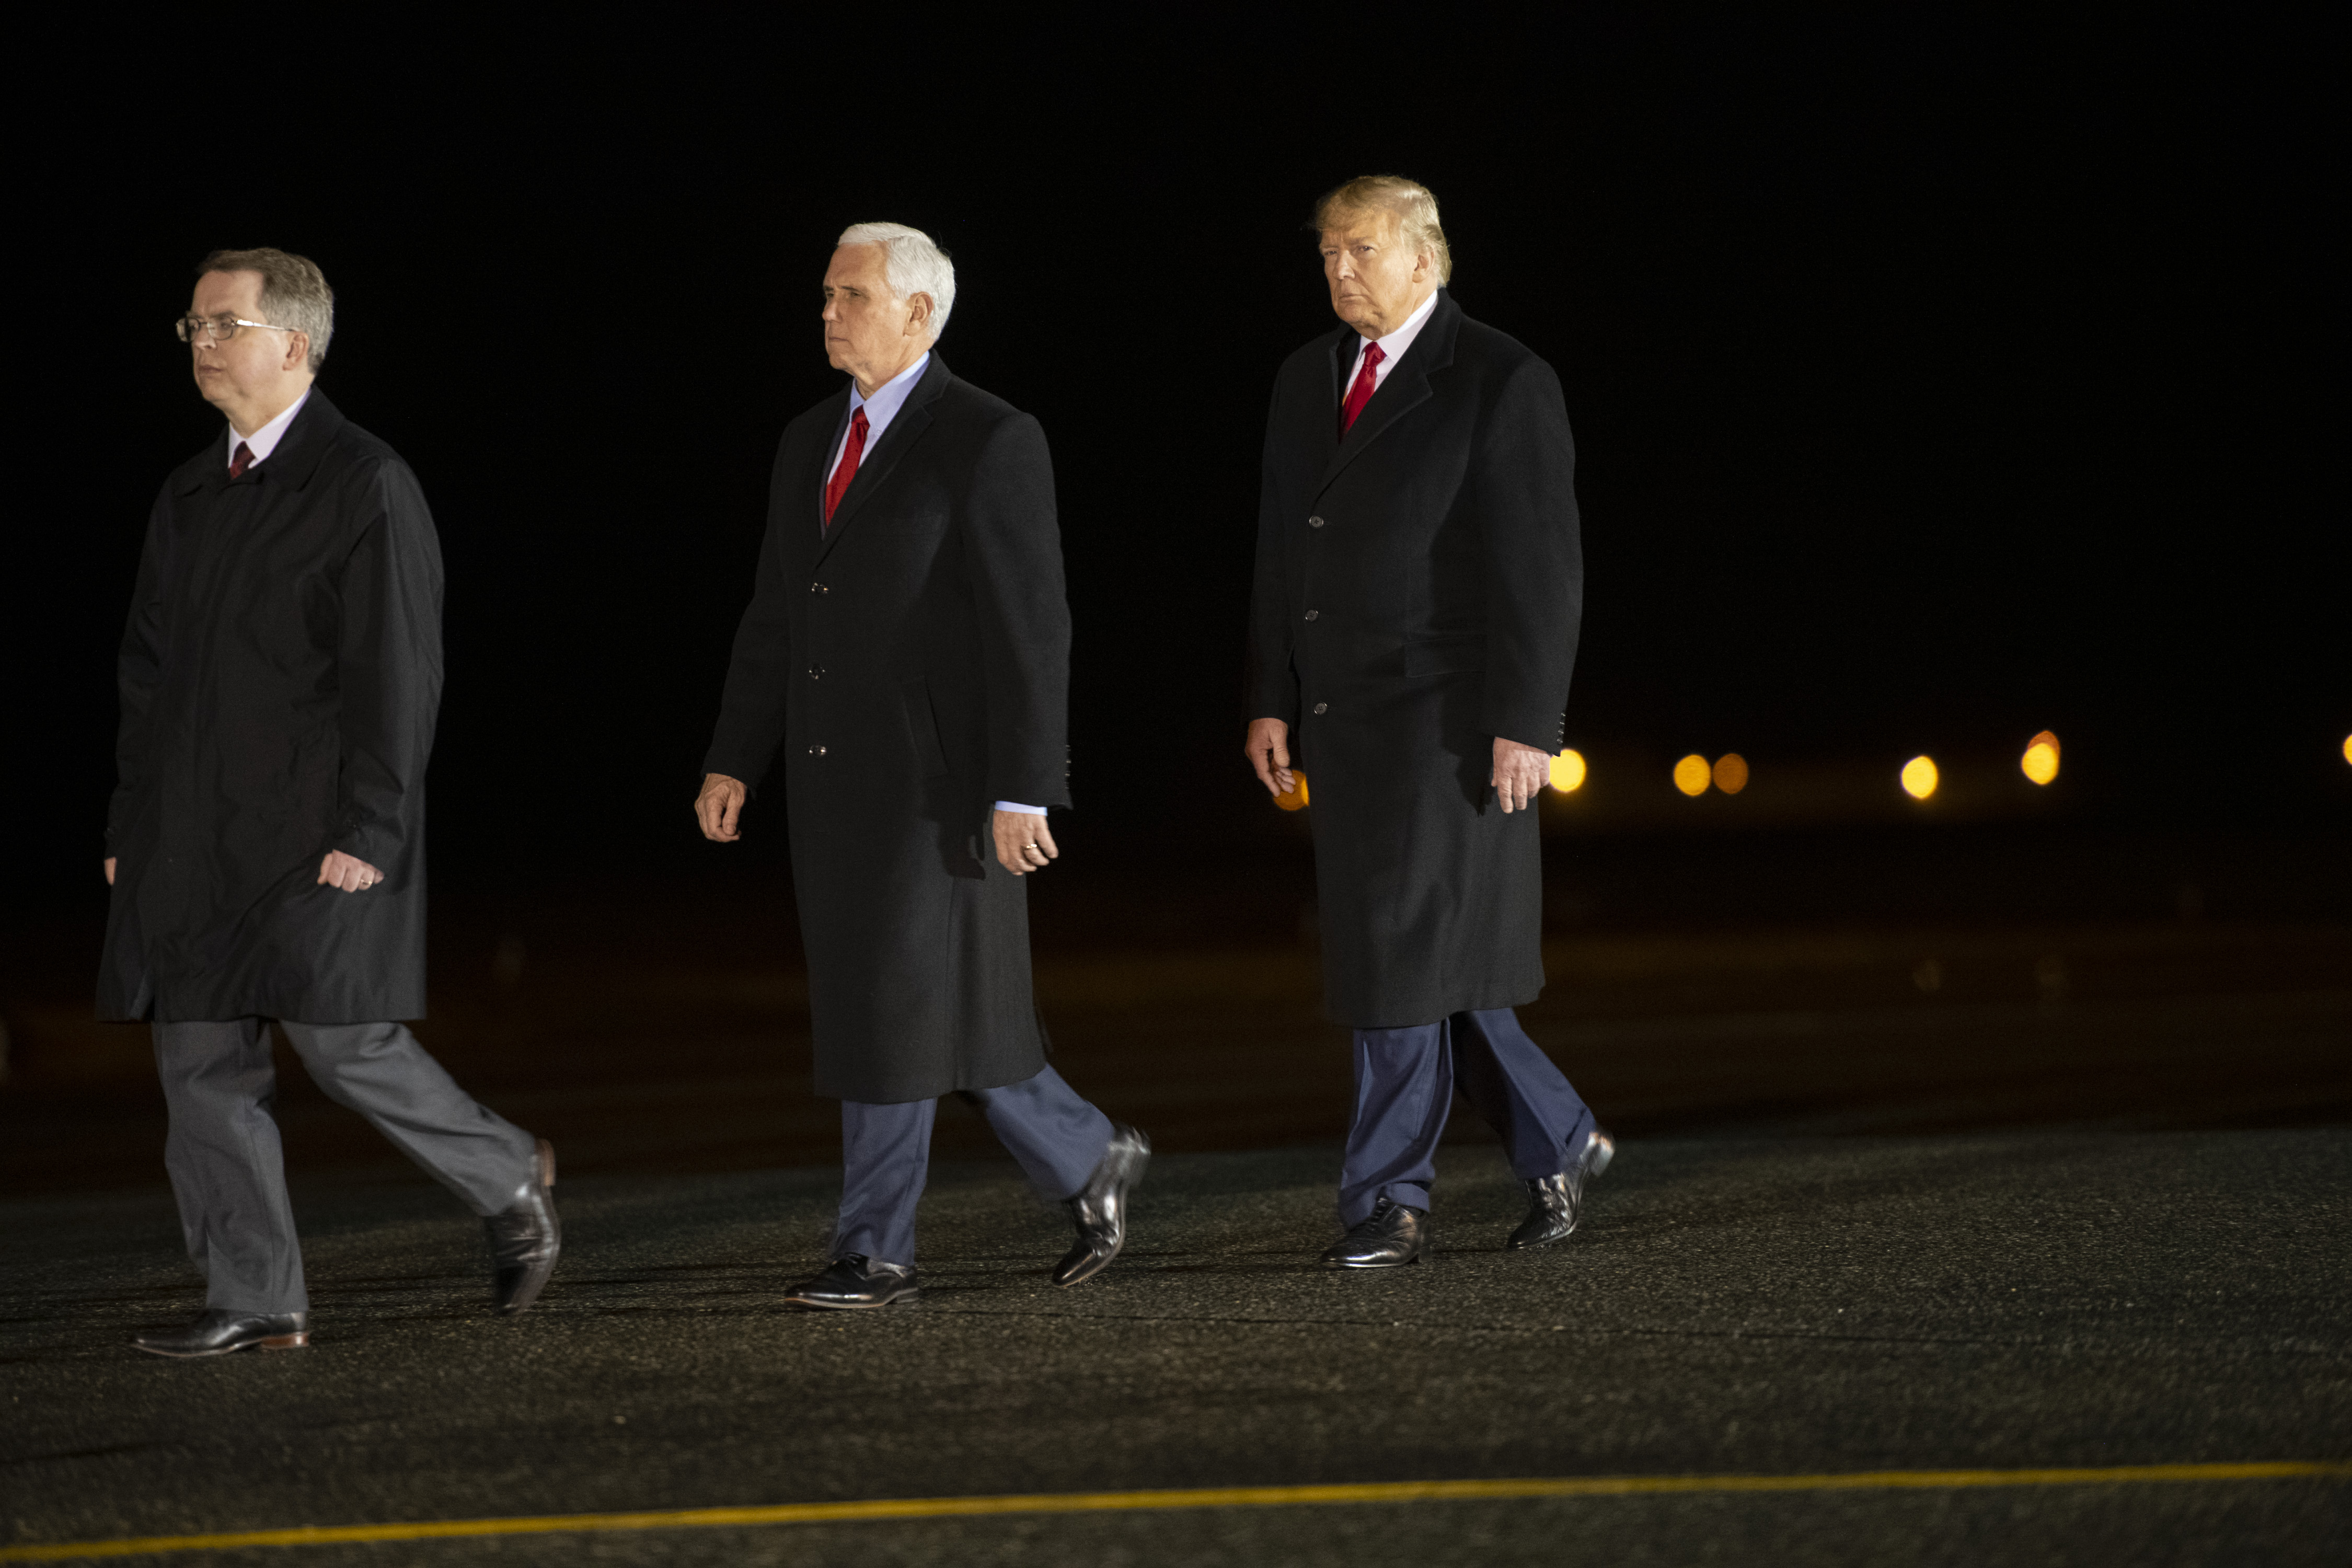 DOVER, DE - FEBRUARY 10: (R) U.S. President Donald J. Trump and (C) Vice President Mike Pence arrive at a dignified transfer for fallen service members, U.S. Army Sgt. 1st Class Javier J. Gutierrez, 28, U.S. Army Sgt. 1st Class Antonio R. Rodriguez, 28, at Dover Air Force Base on February 10, 2020 in Dover, Delaware. Both soldiers were killed in an attack in the Nangarhar province of Afghanistan on Saturday, according to a Department of Defense release. (Photo by Mark Makela/Getty Images)